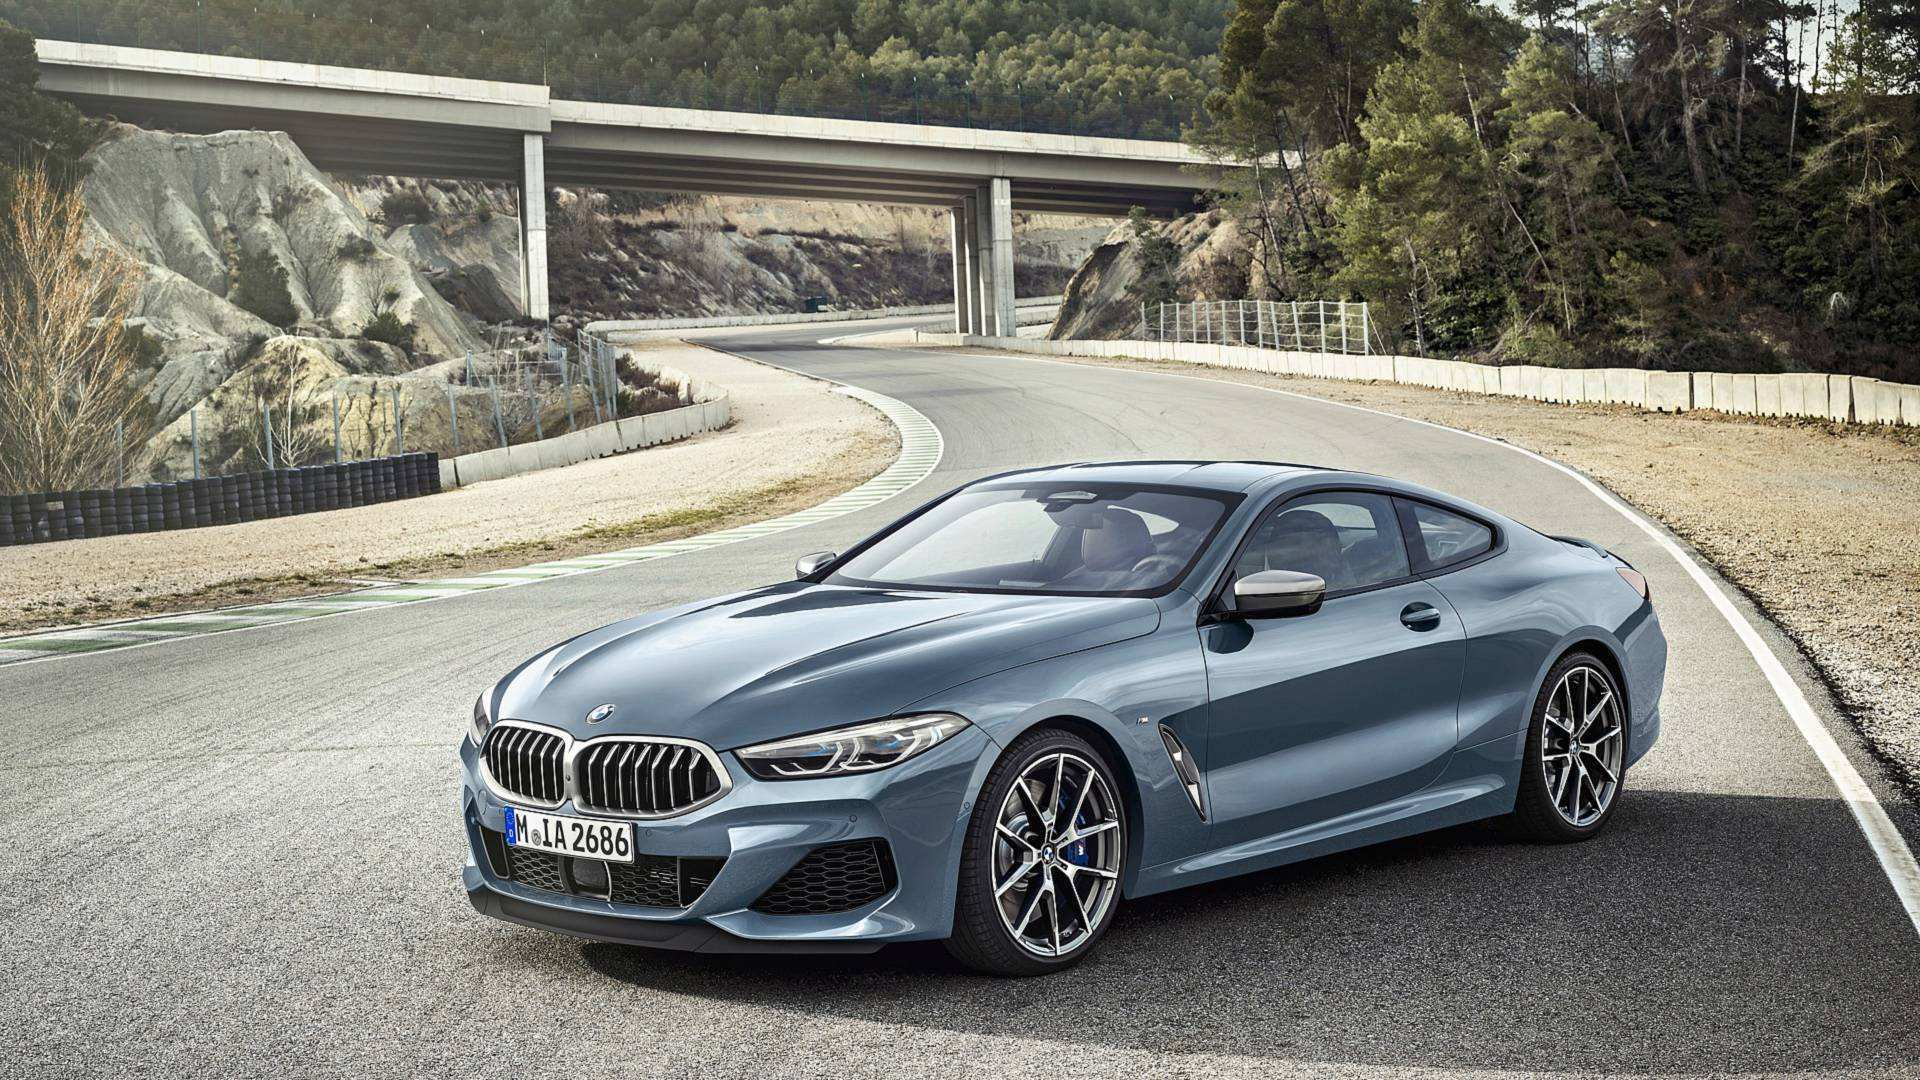 90 The 2020 Bmw 8 Series Price Exterior and Interior by 2020 Bmw 8 Series Price